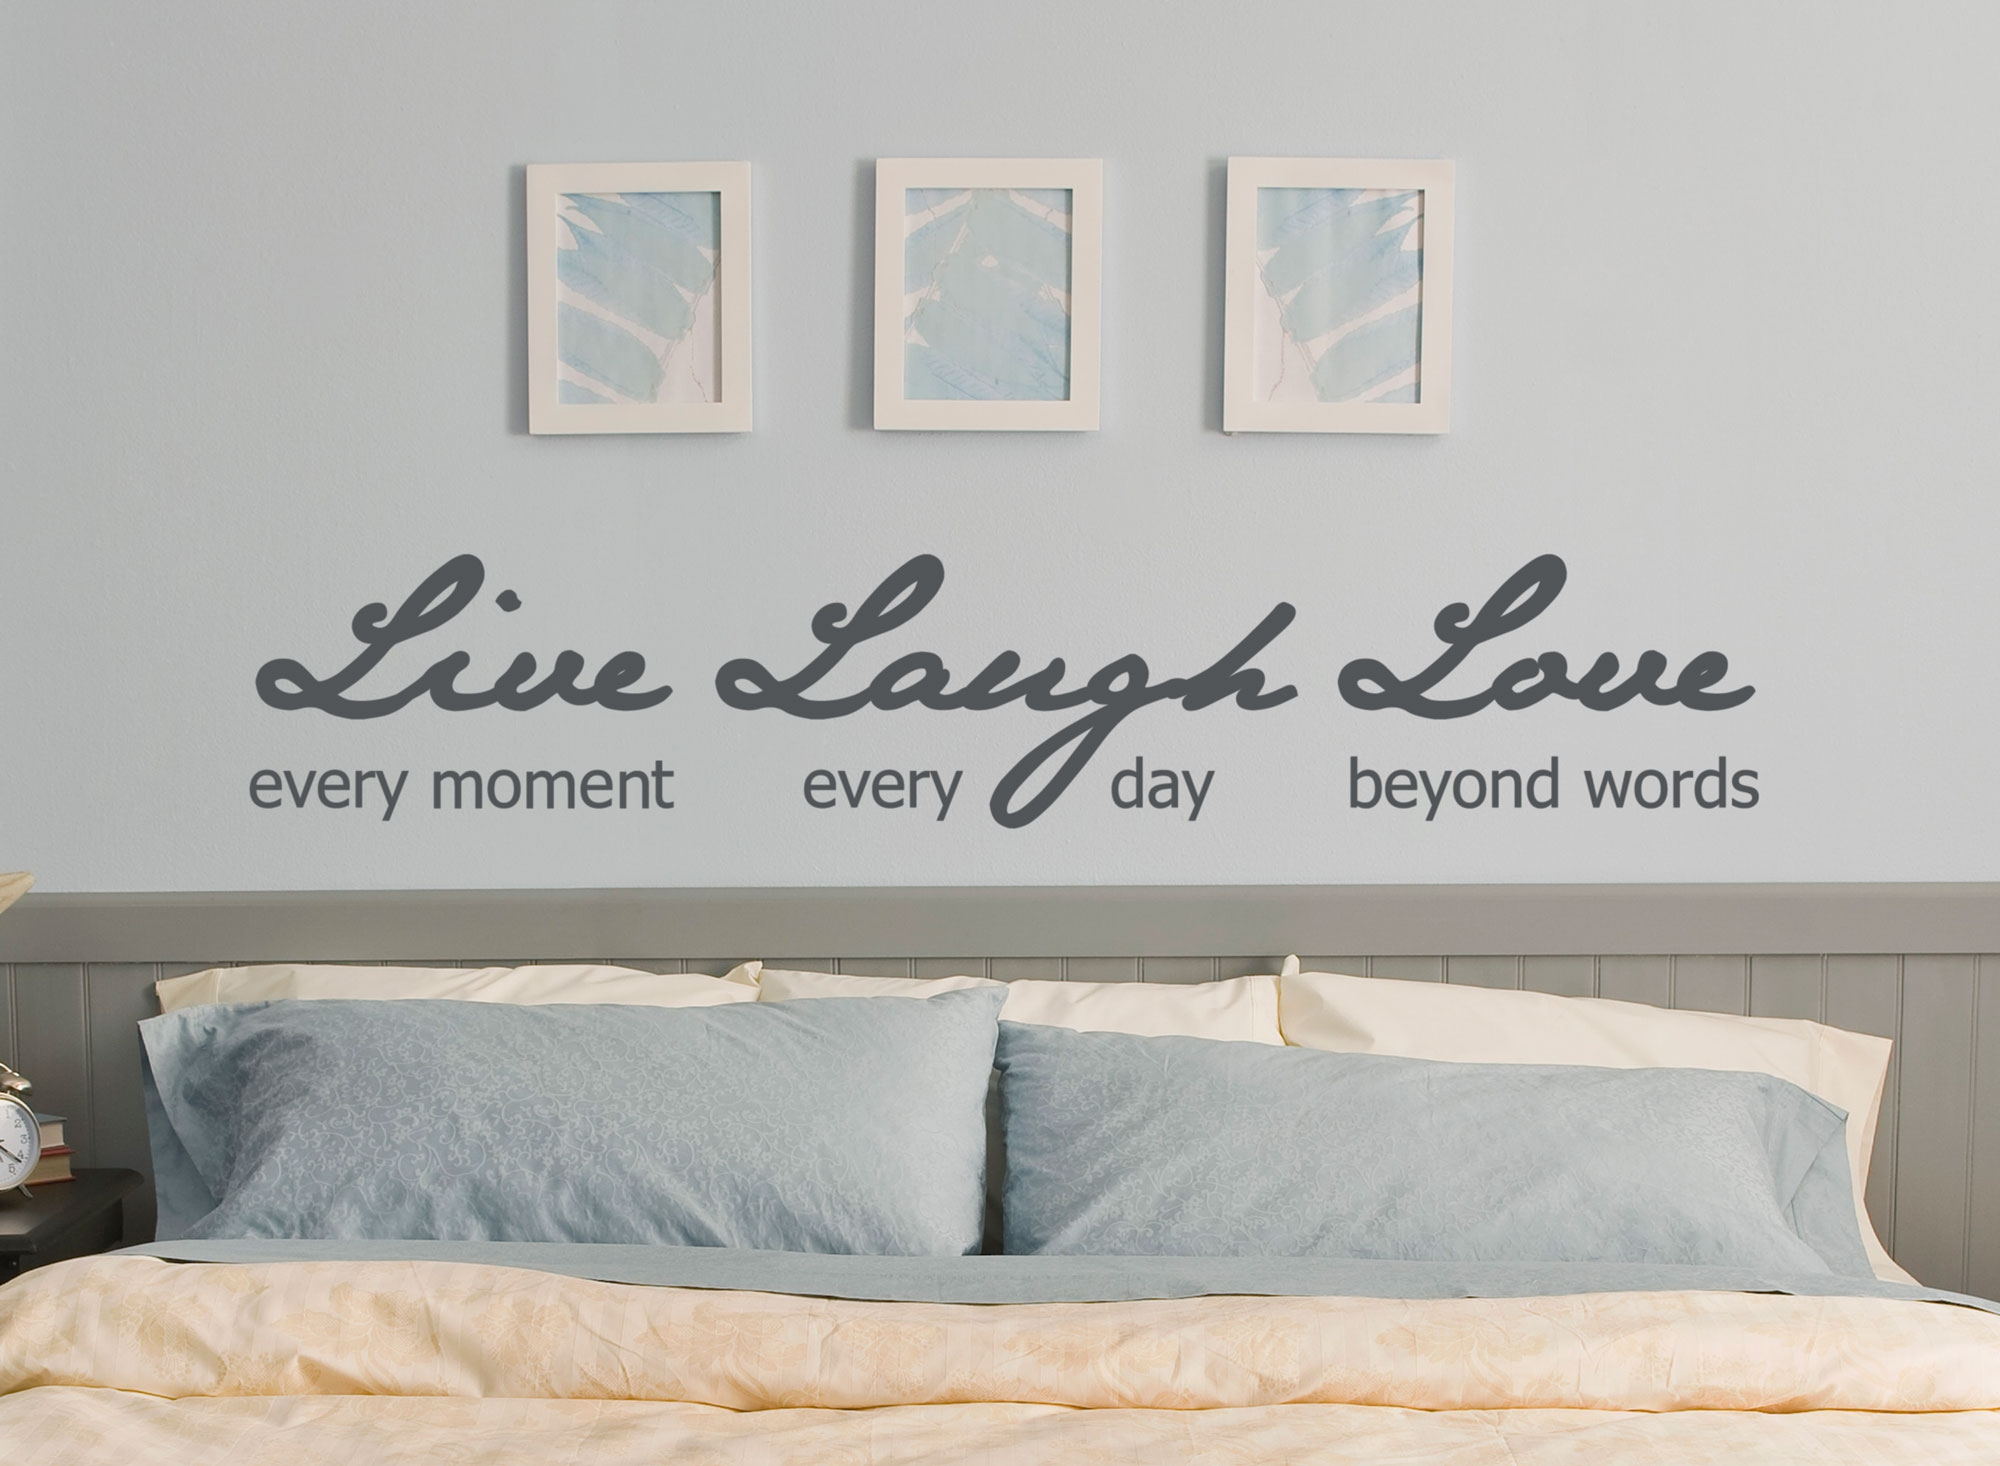 Live every moment laugh every day love quote wall decal vinyl live every moment laugh every day love quote wall decal vinyl sticker ozdeco ts polonaiz amipublicfo Choice Image